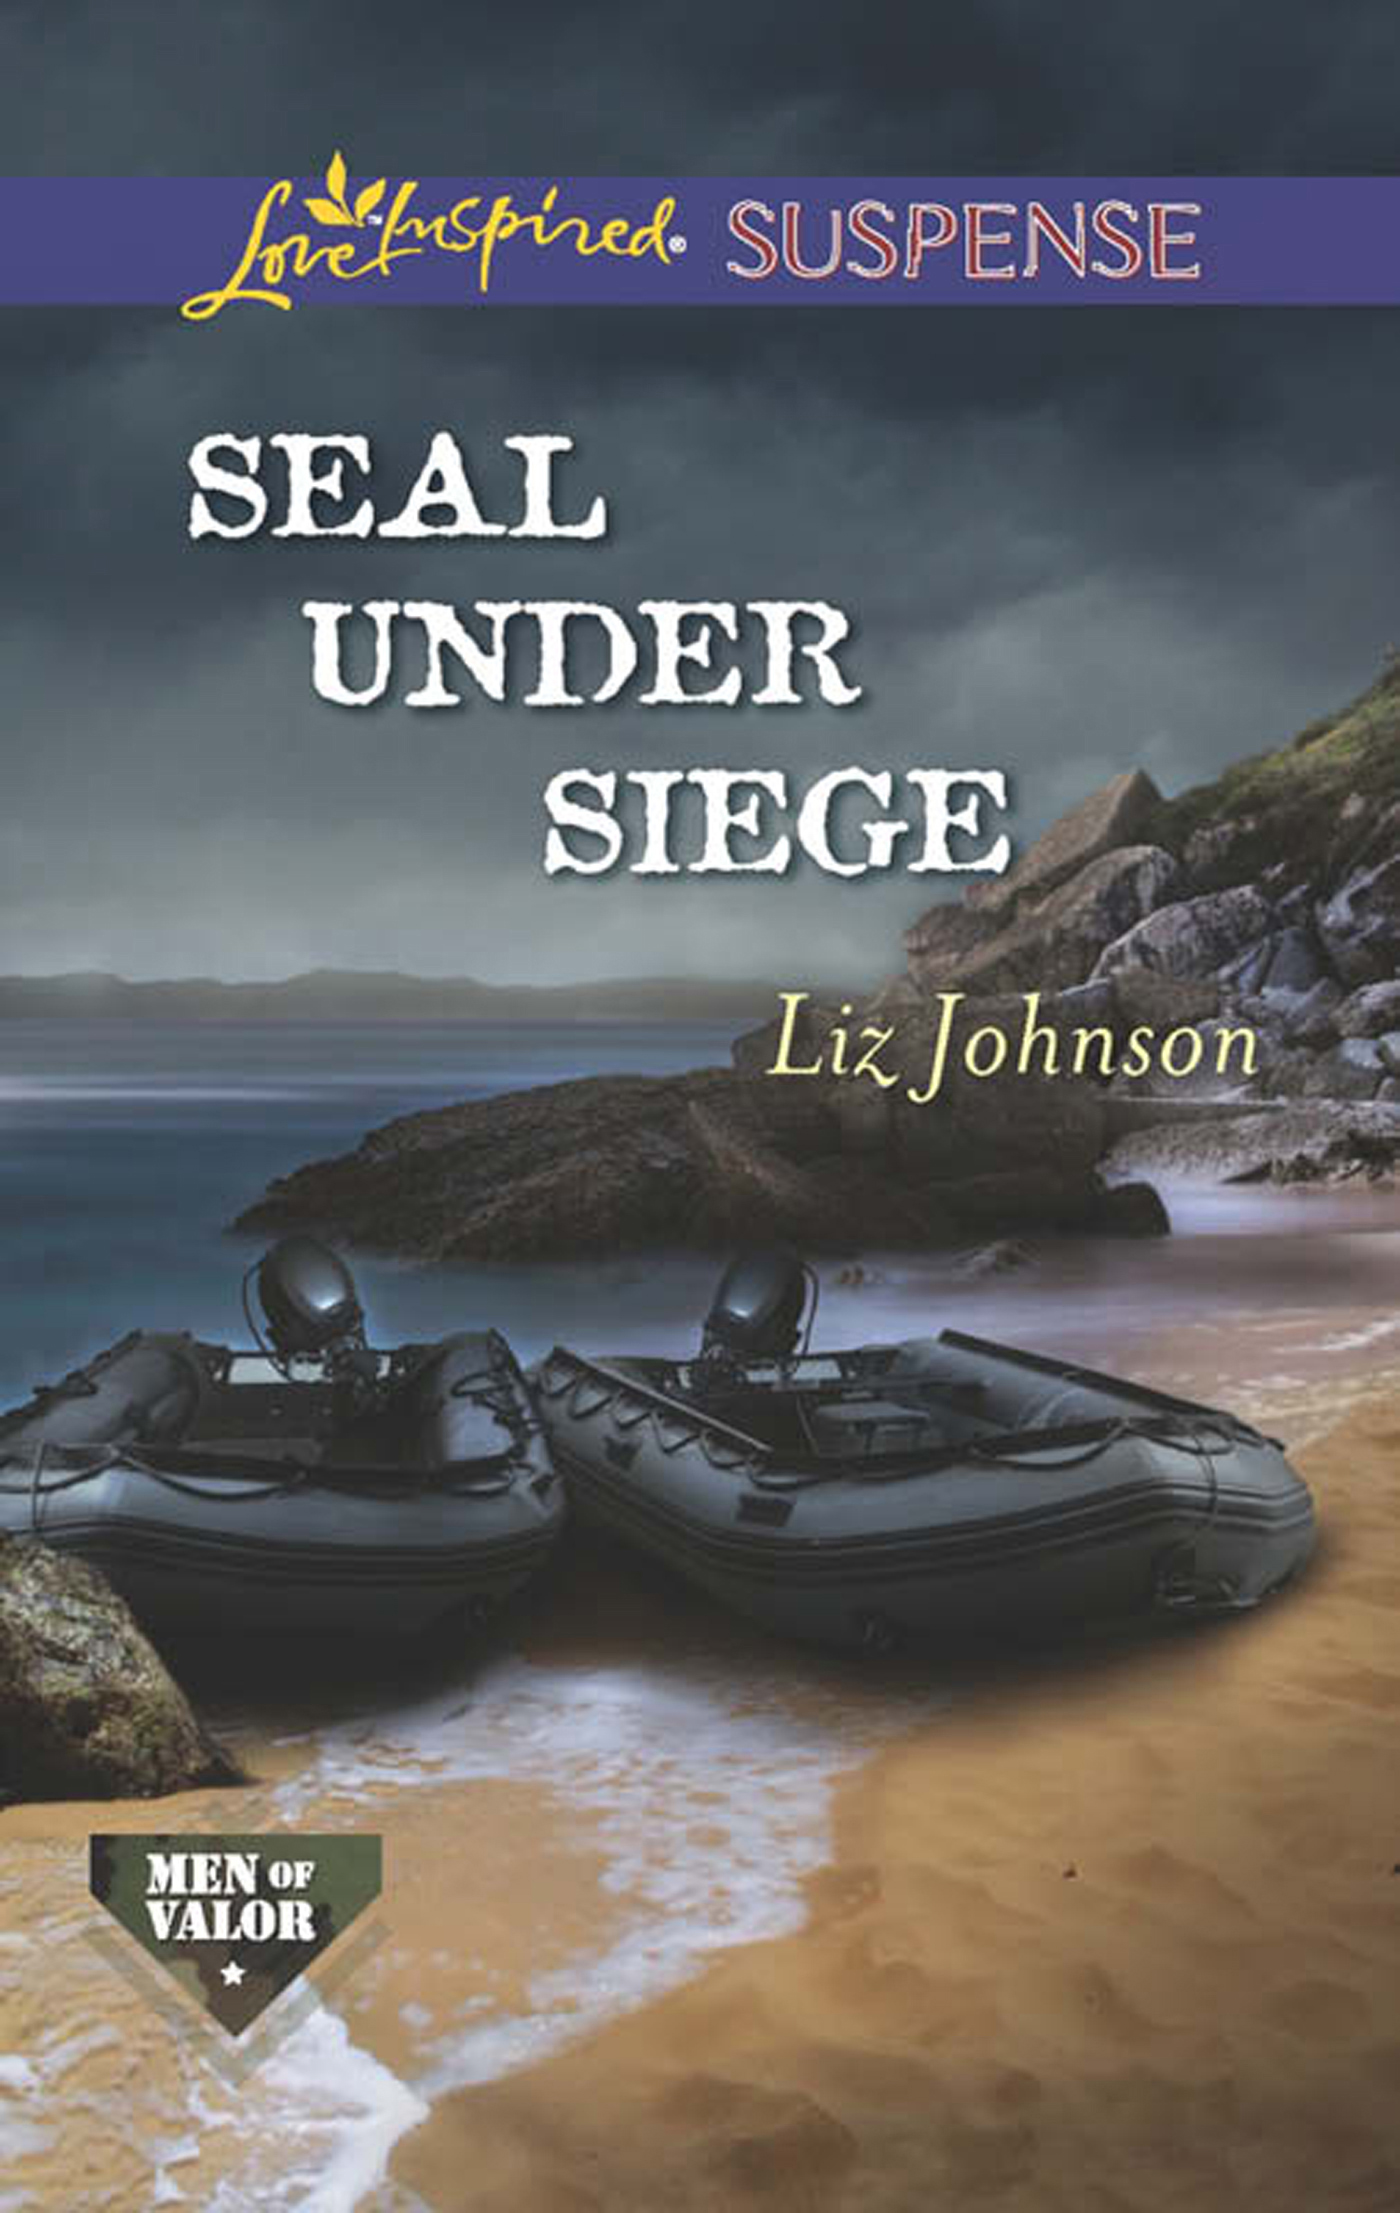 SEAL Under Siege (Mills & Boon Love Inspired Suspense) (Men of Valor - Book 2)